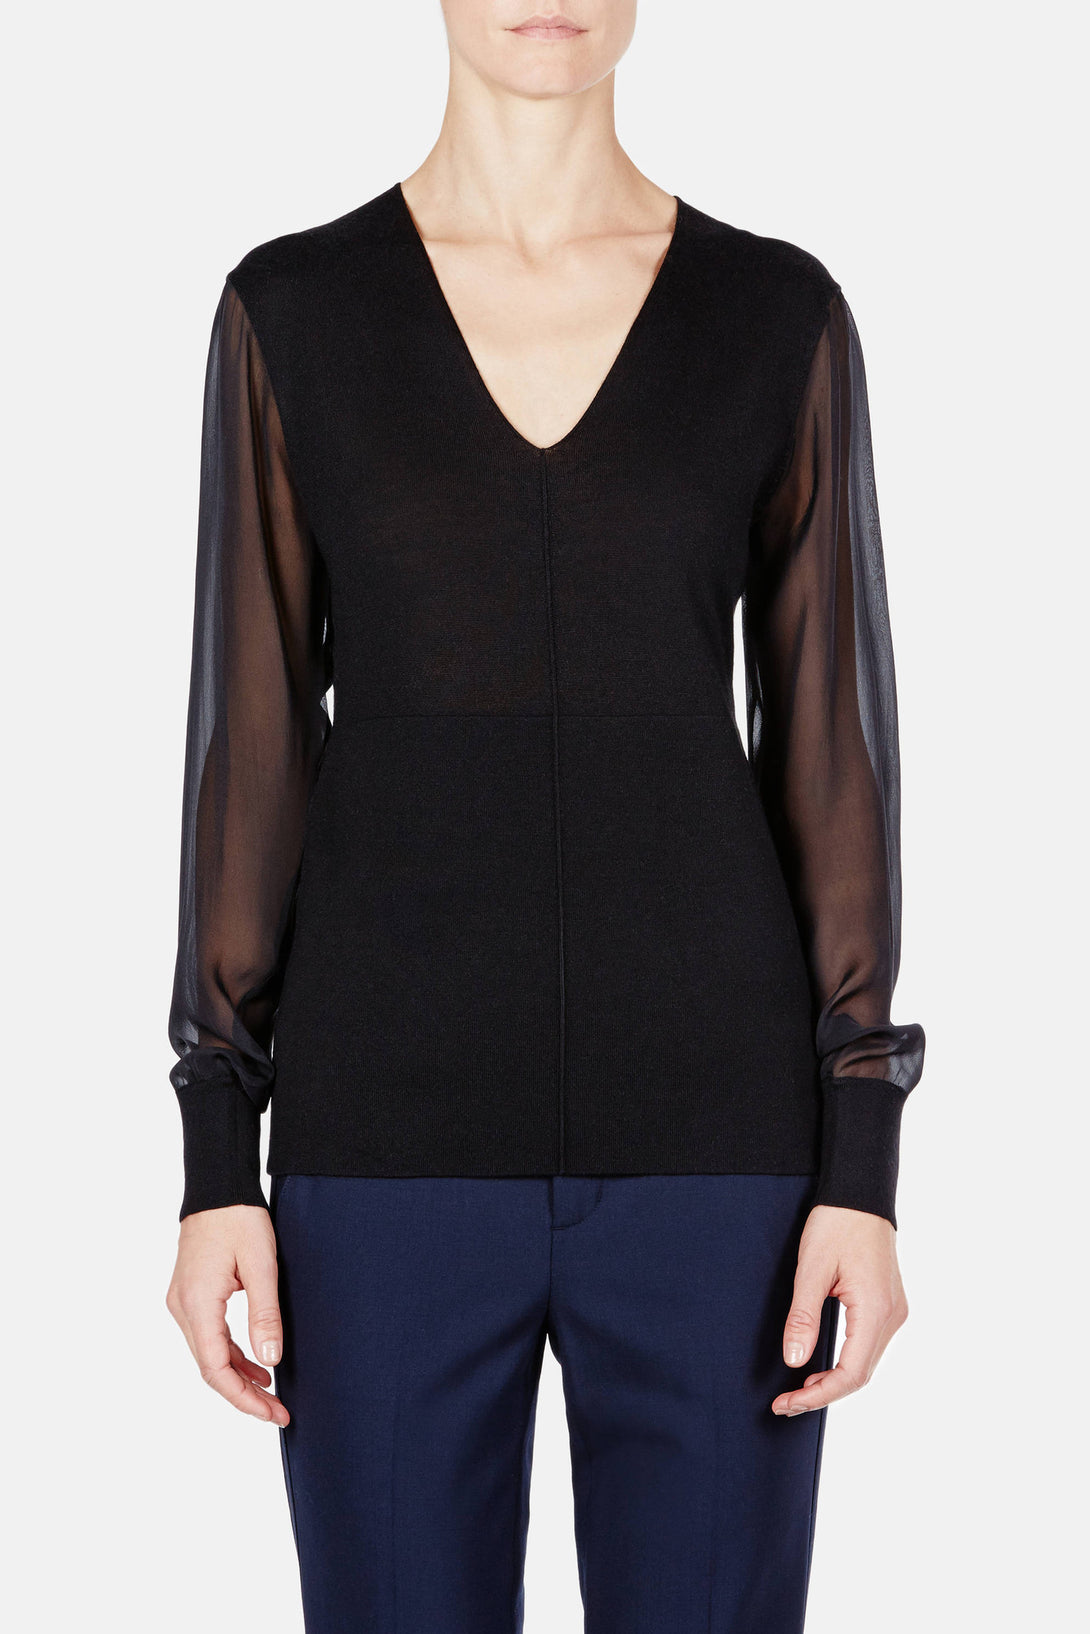 Silk Cashmere Chiffon Sleeve V-Neck - Black